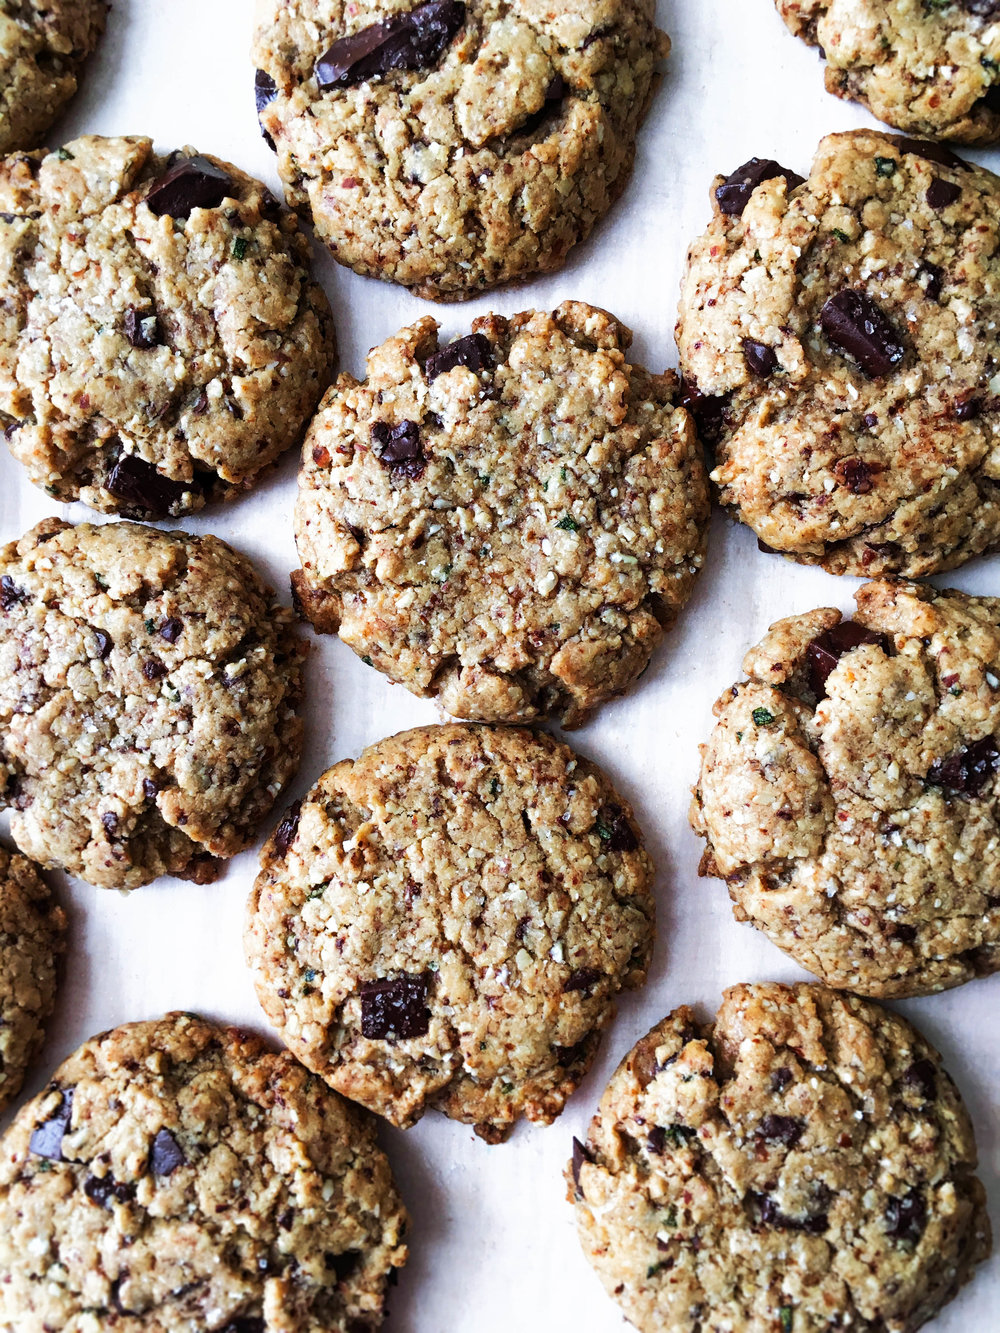 vegan-gluten-free-olive-oil-tahini-chocolate-chunk-cookie.jpg